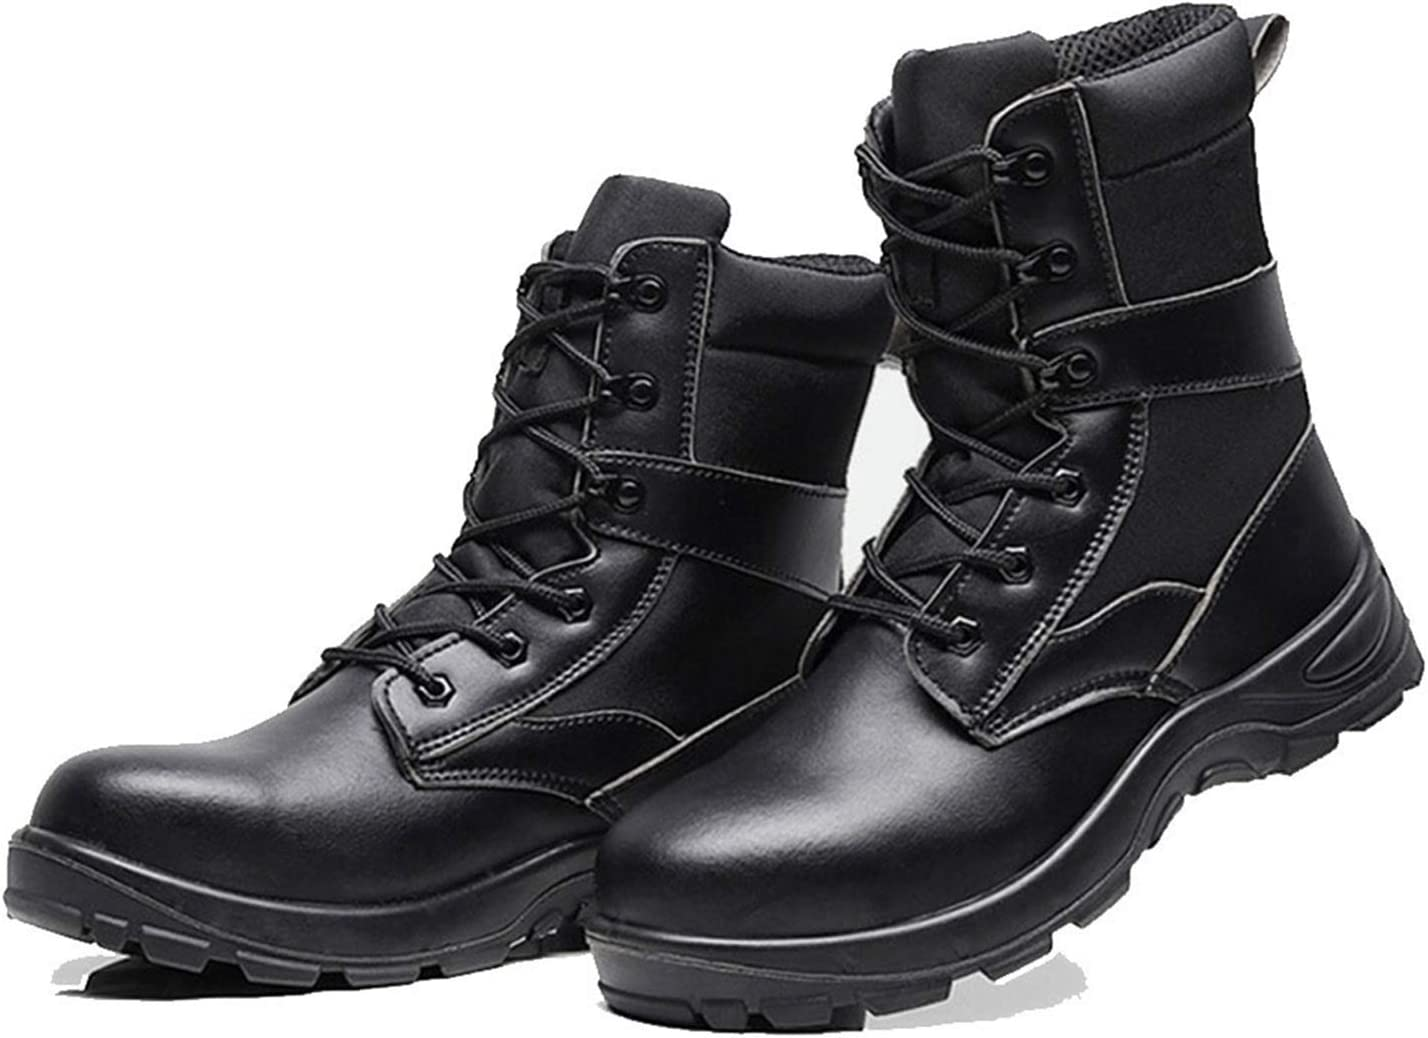 Winter Ranking TOP15 Men's Safety Work Shoes Steel Puncture Cap Toe P Trainers Luxury